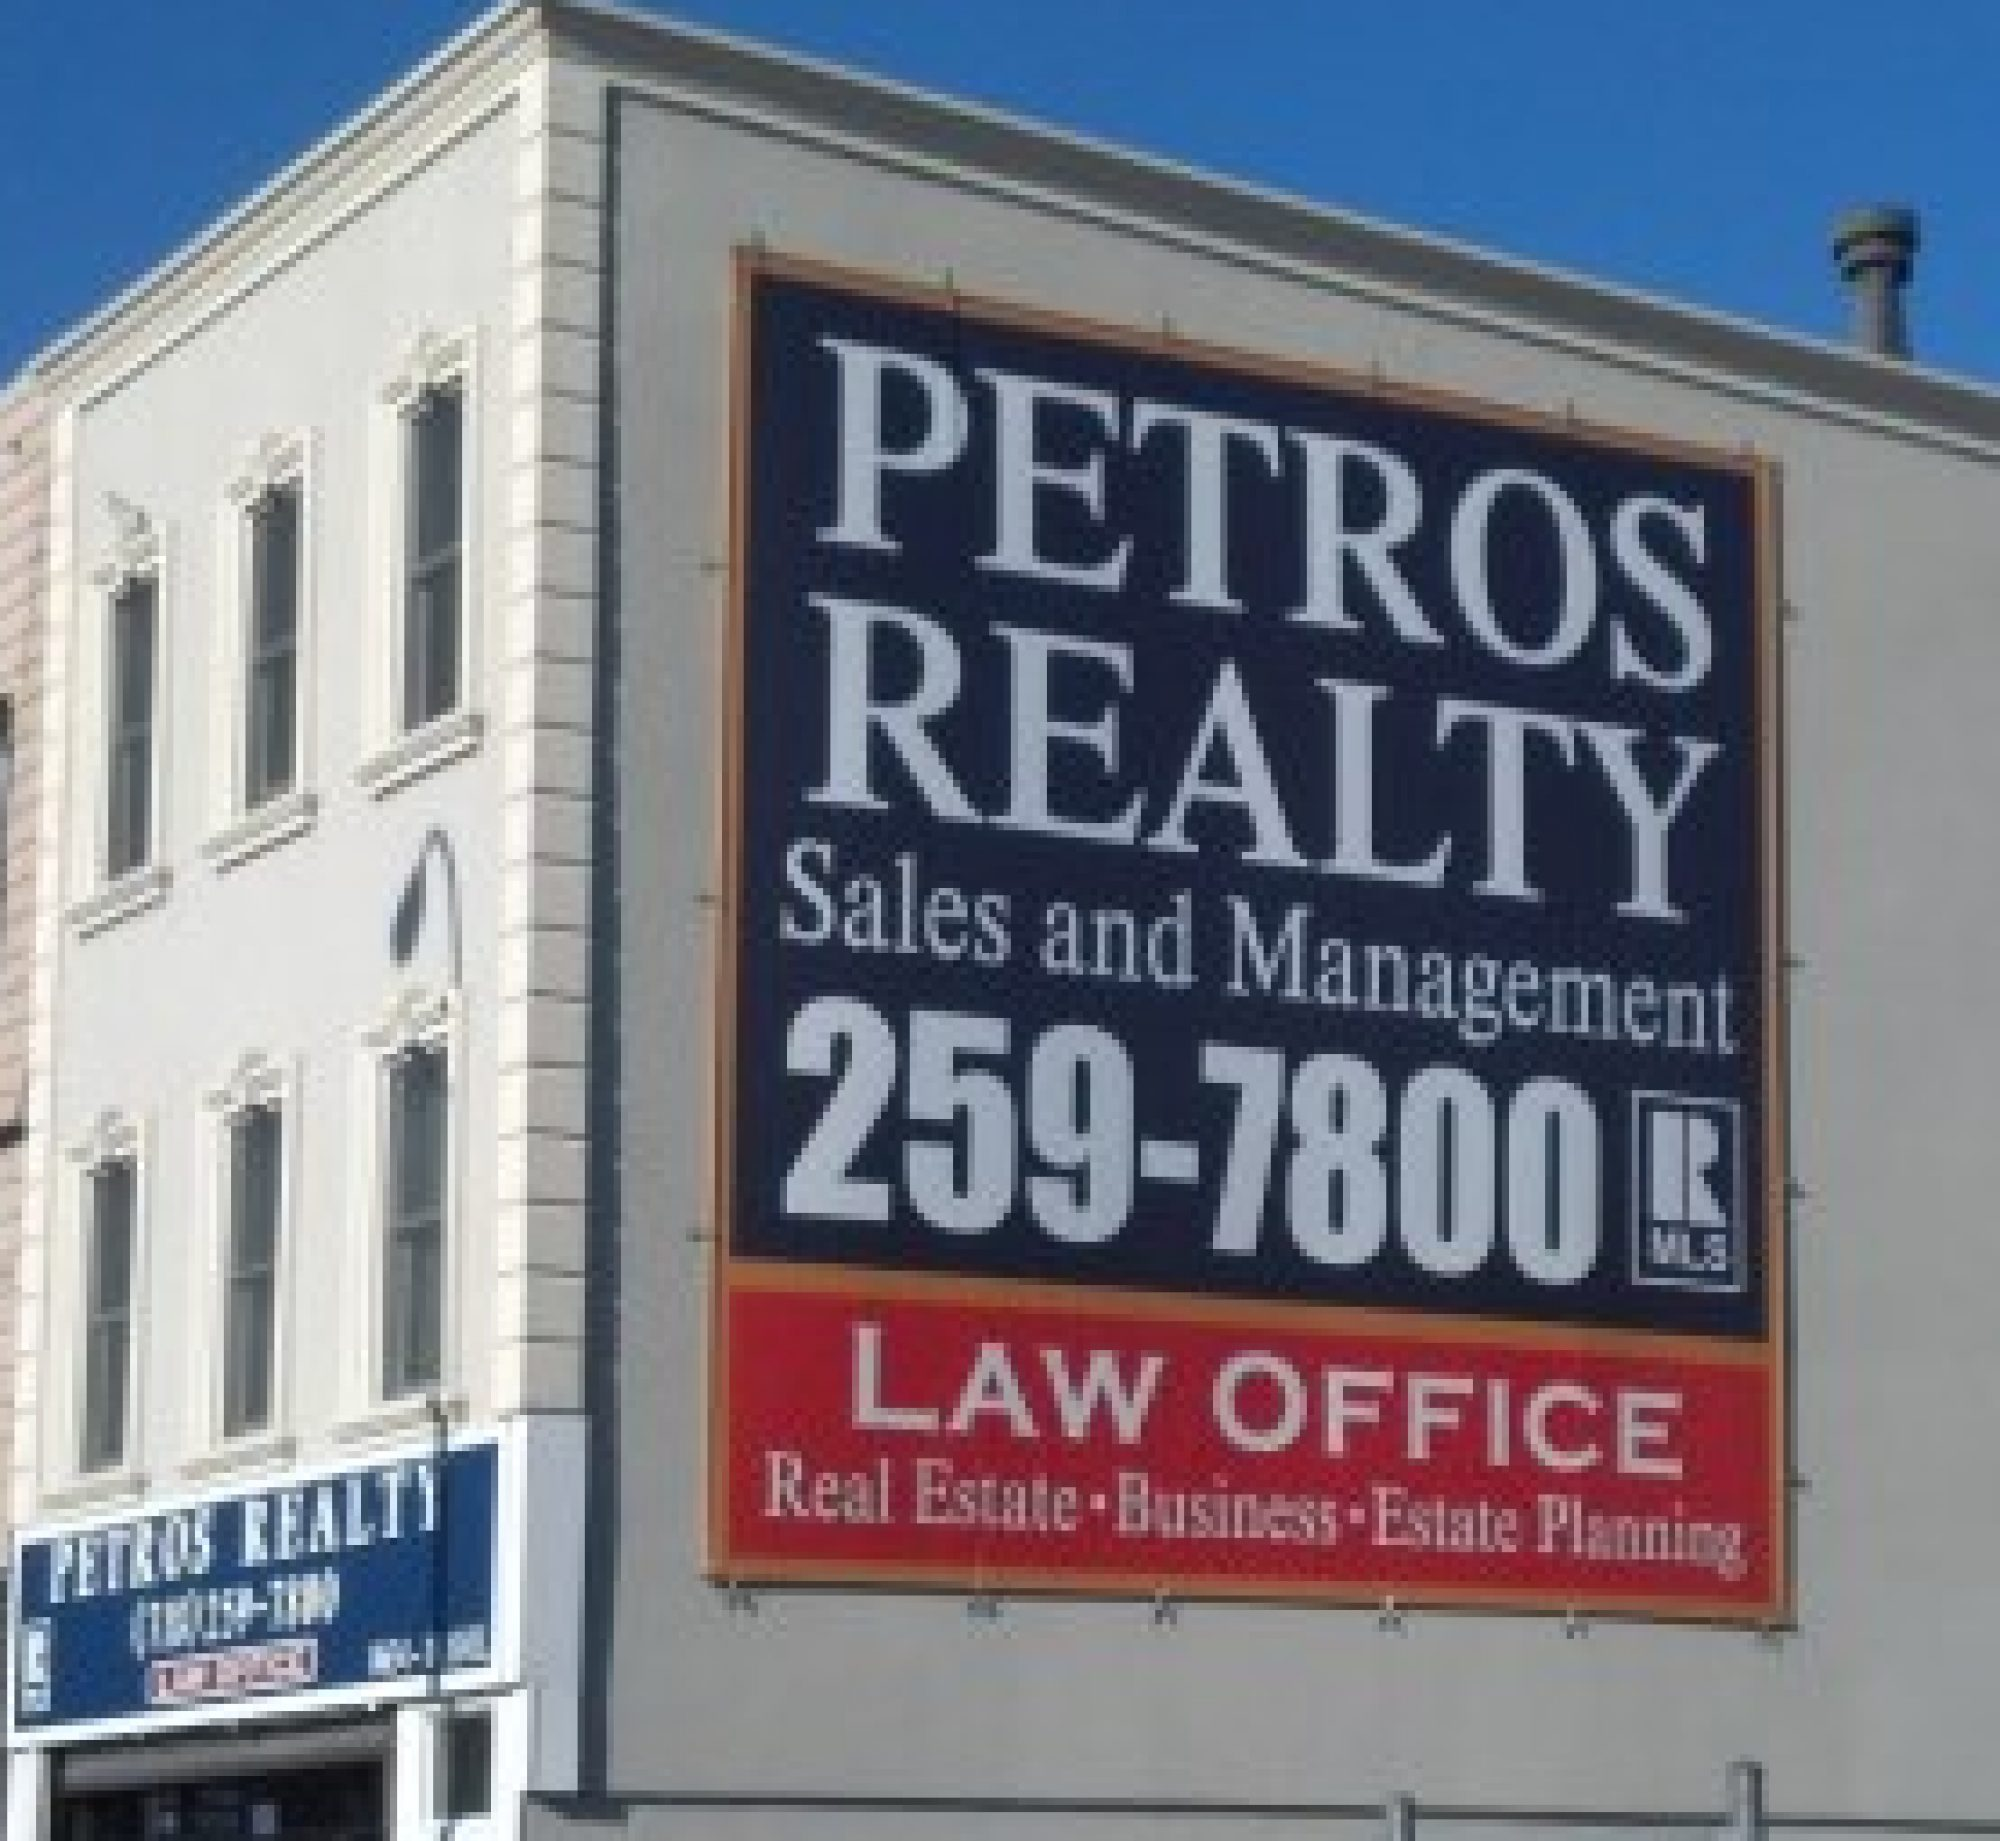 Petros Realty & Law Firm